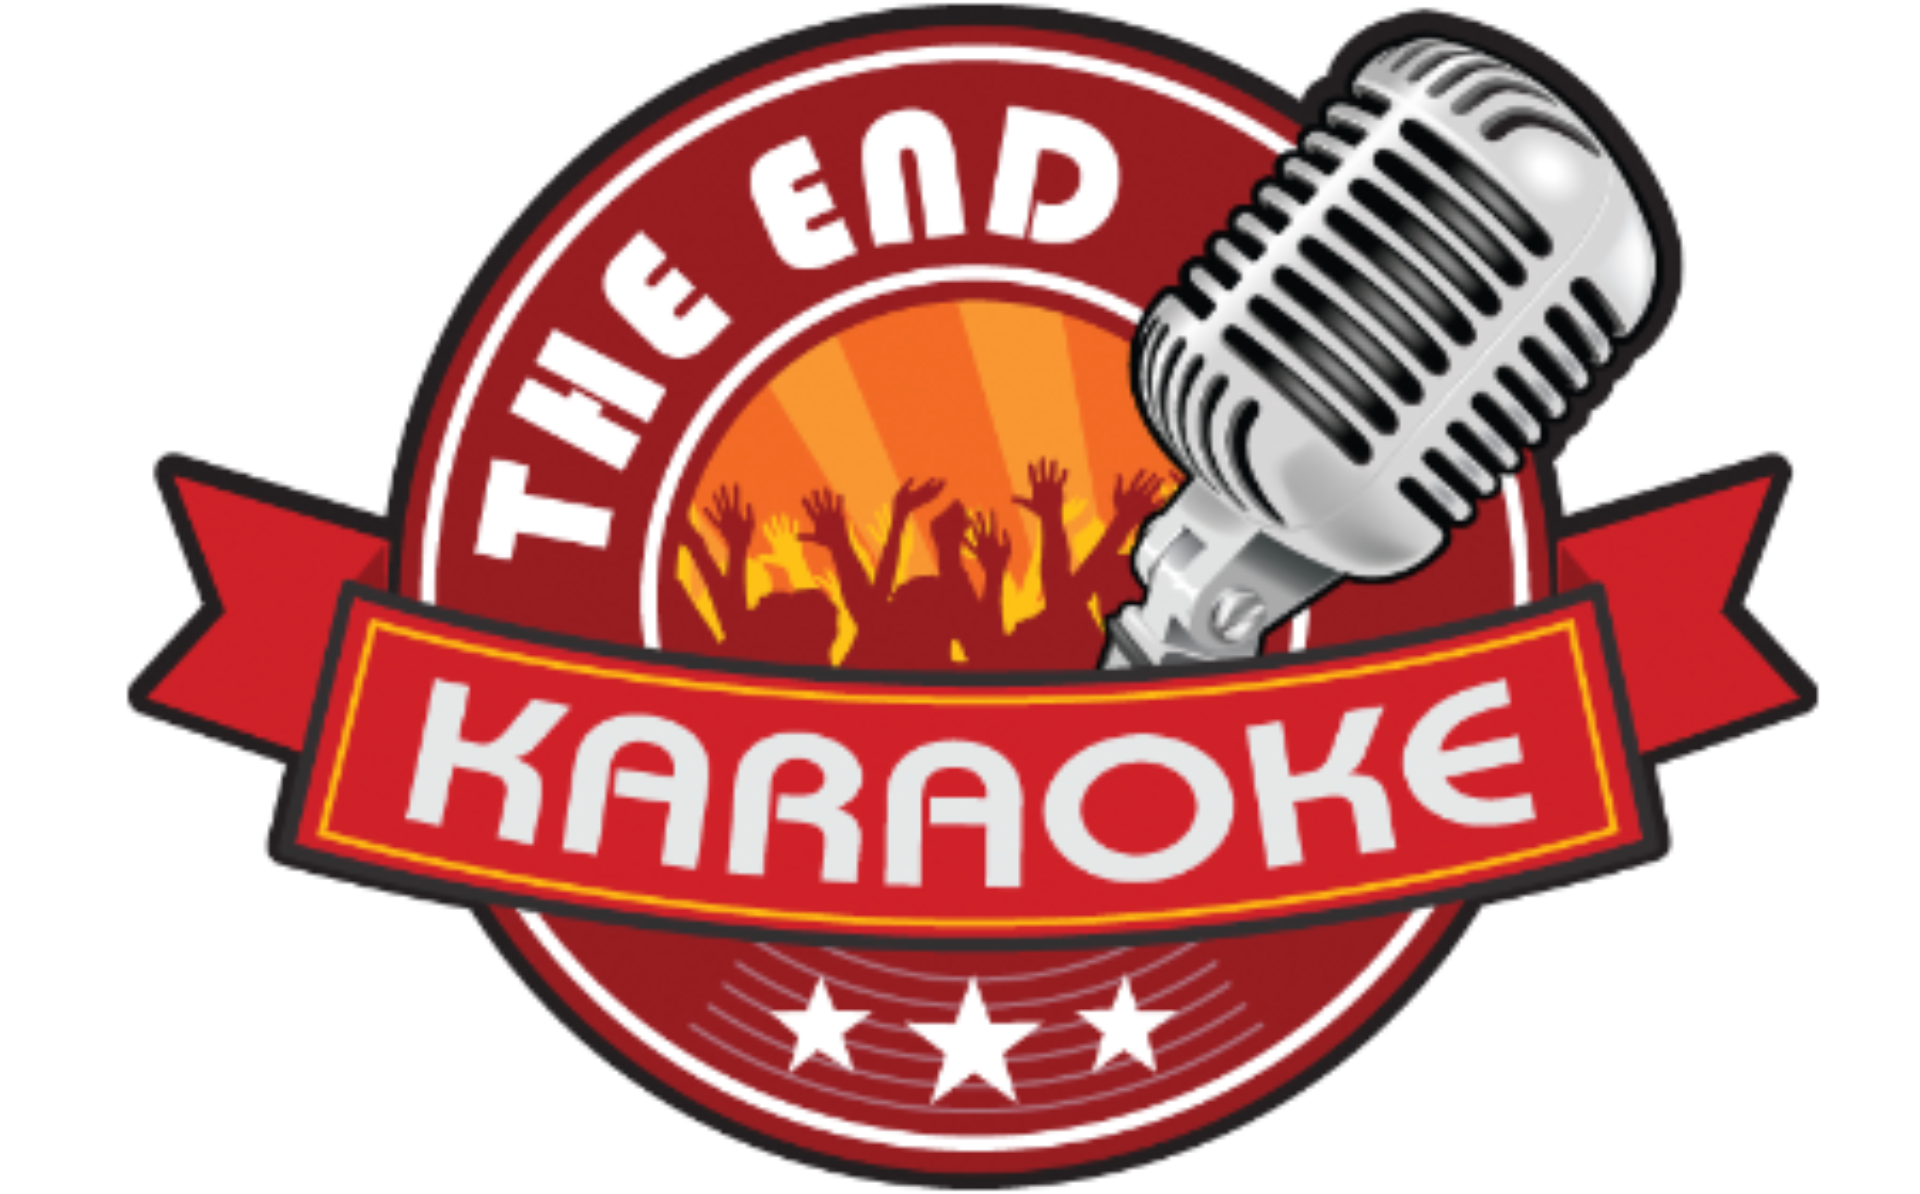 Cafe The End Karaoke